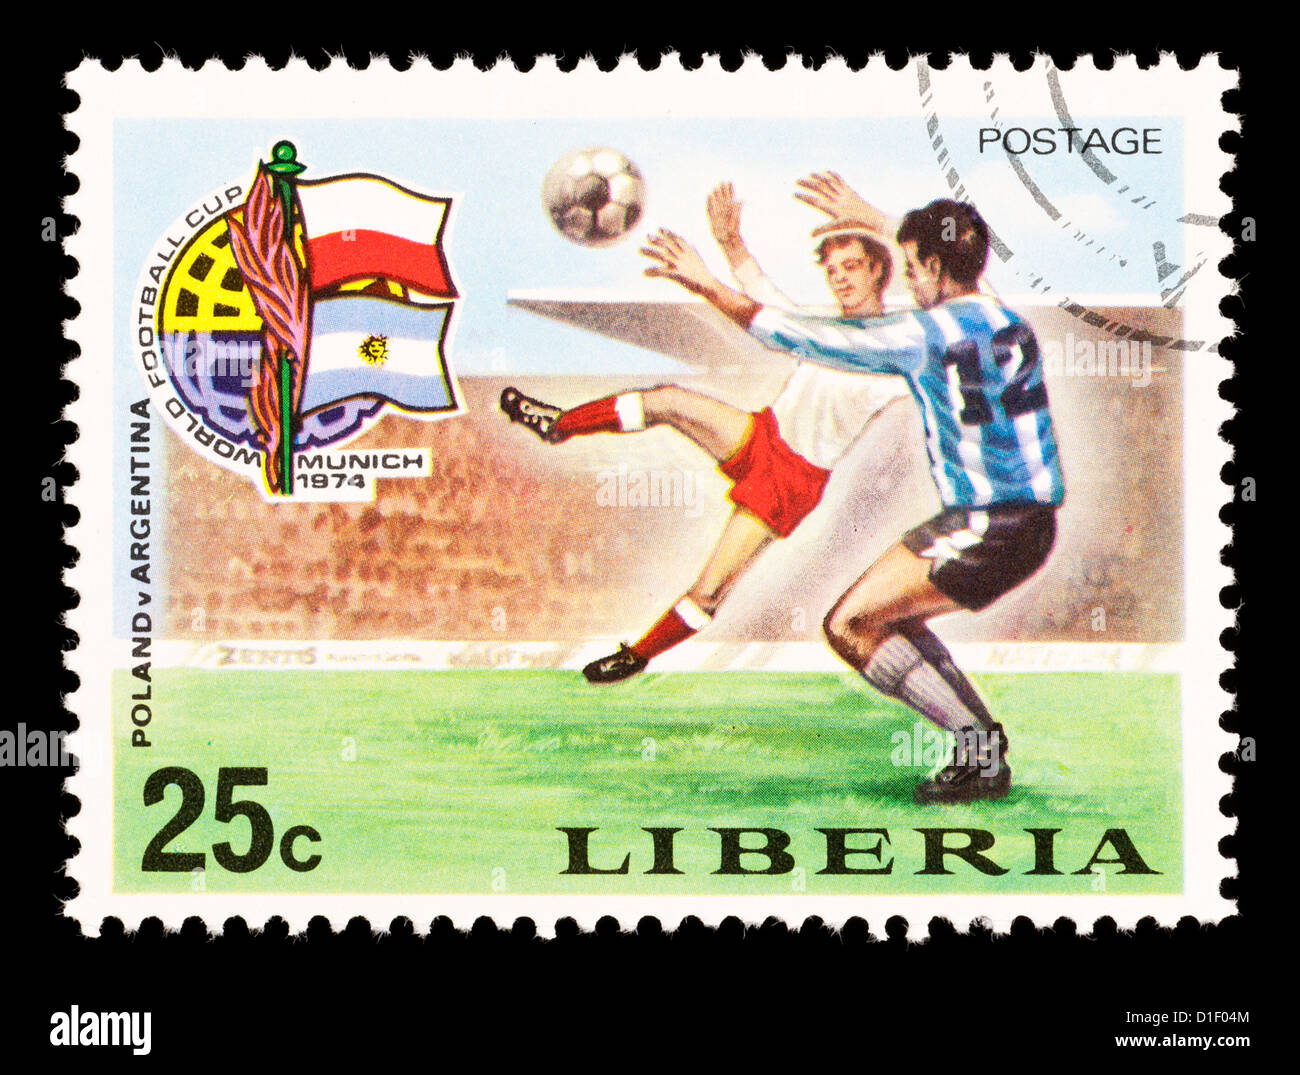 Postage stamp from Liberia depicting soccer players, issued for the 1974 Soccer World Cup. - Stock Image